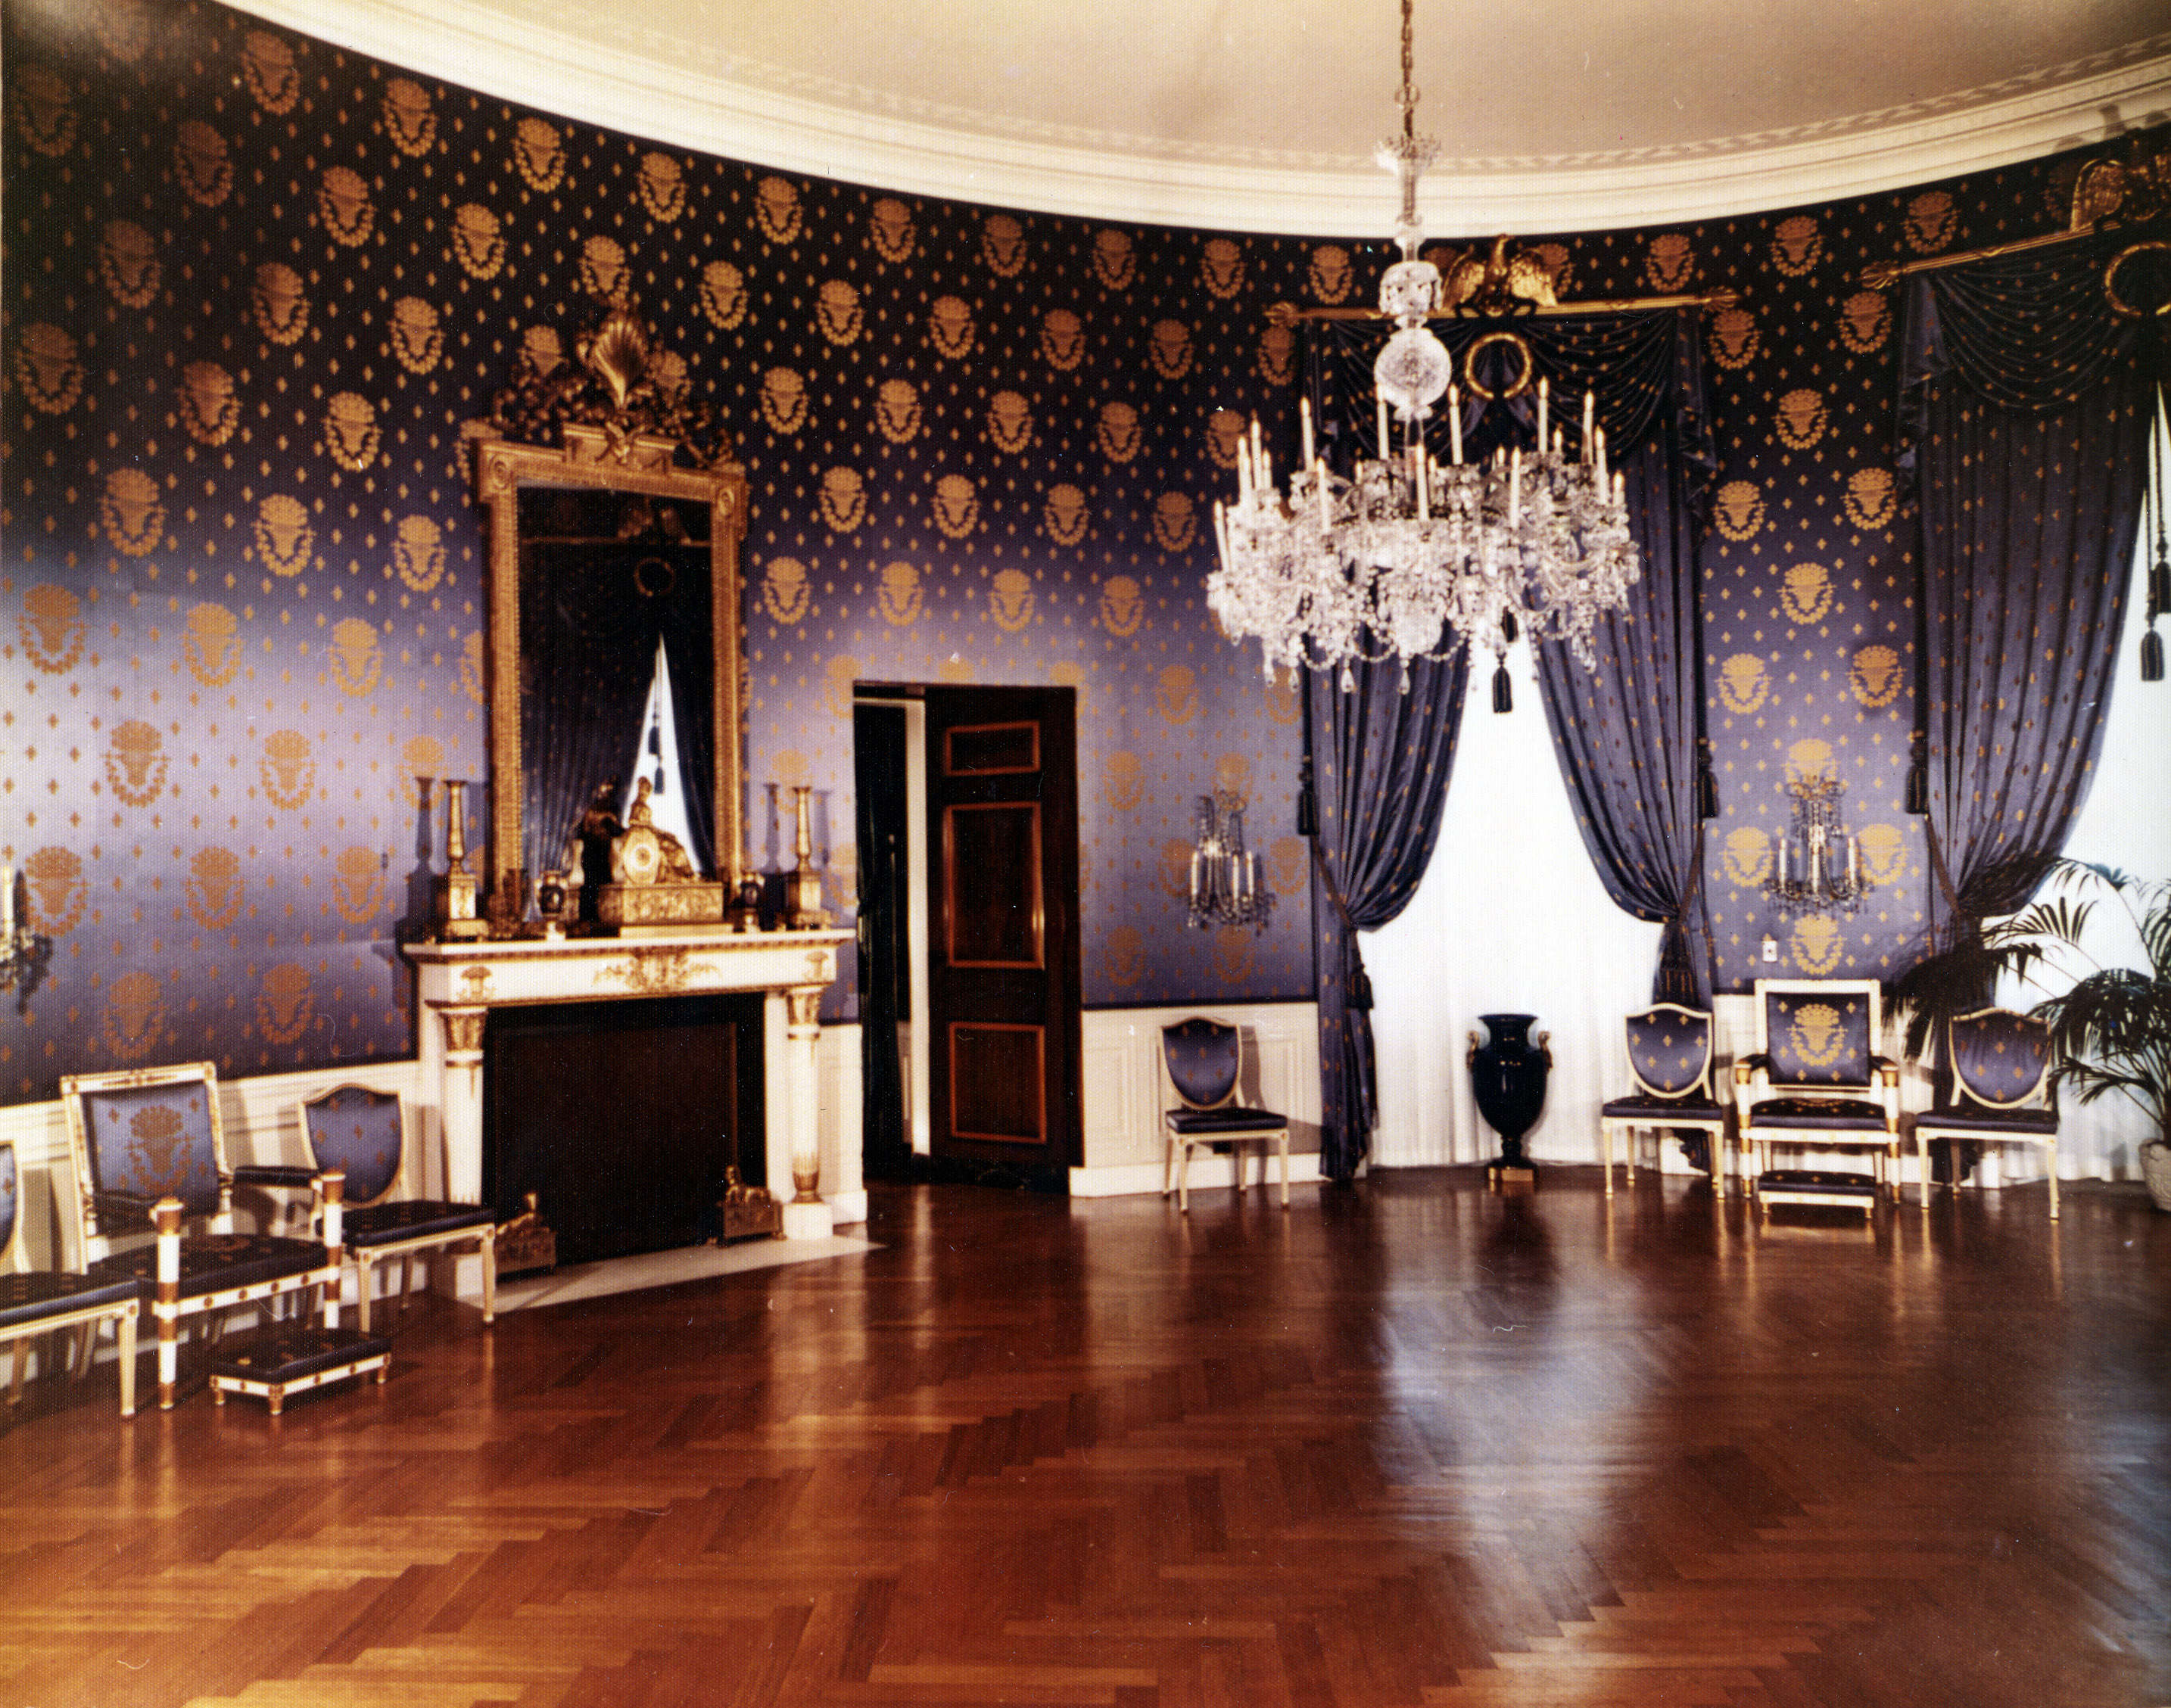 file blue room at the white house post renovation 07 15 wikimedia commons. Black Bedroom Furniture Sets. Home Design Ideas